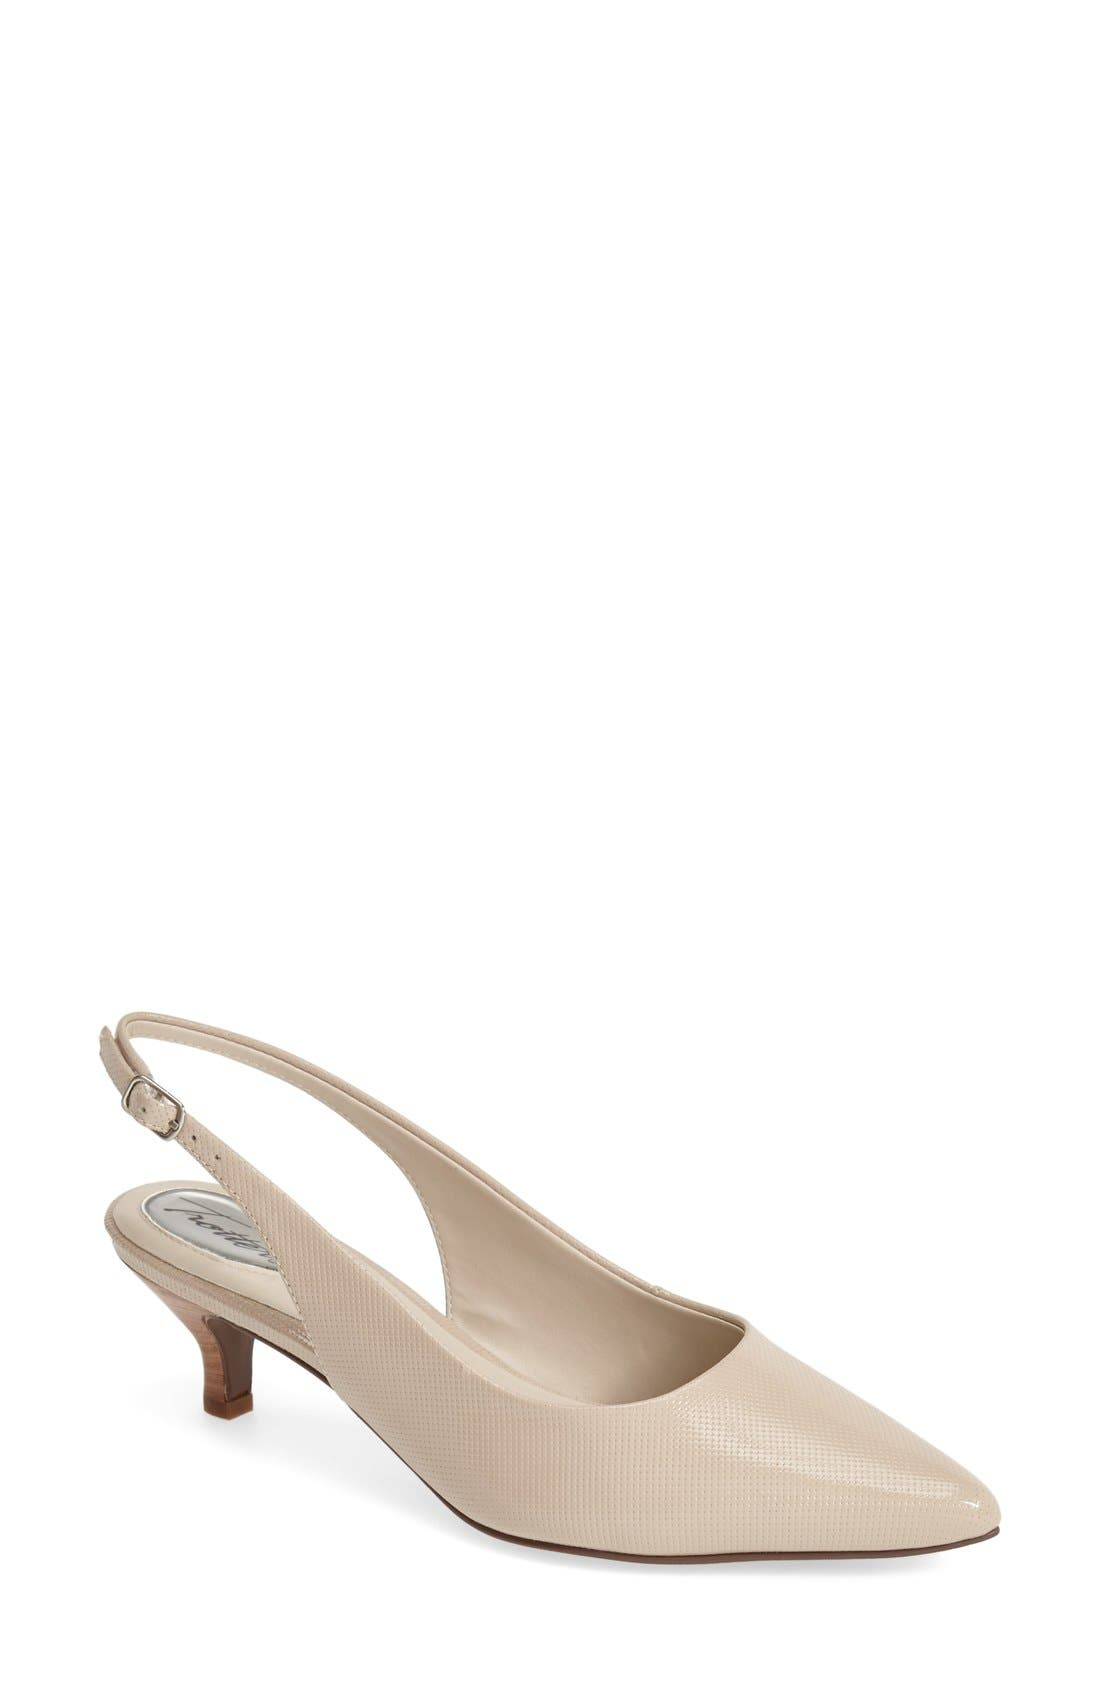 Alternate Image 1 Selected - Trotters 'Prima' Pump (Women)